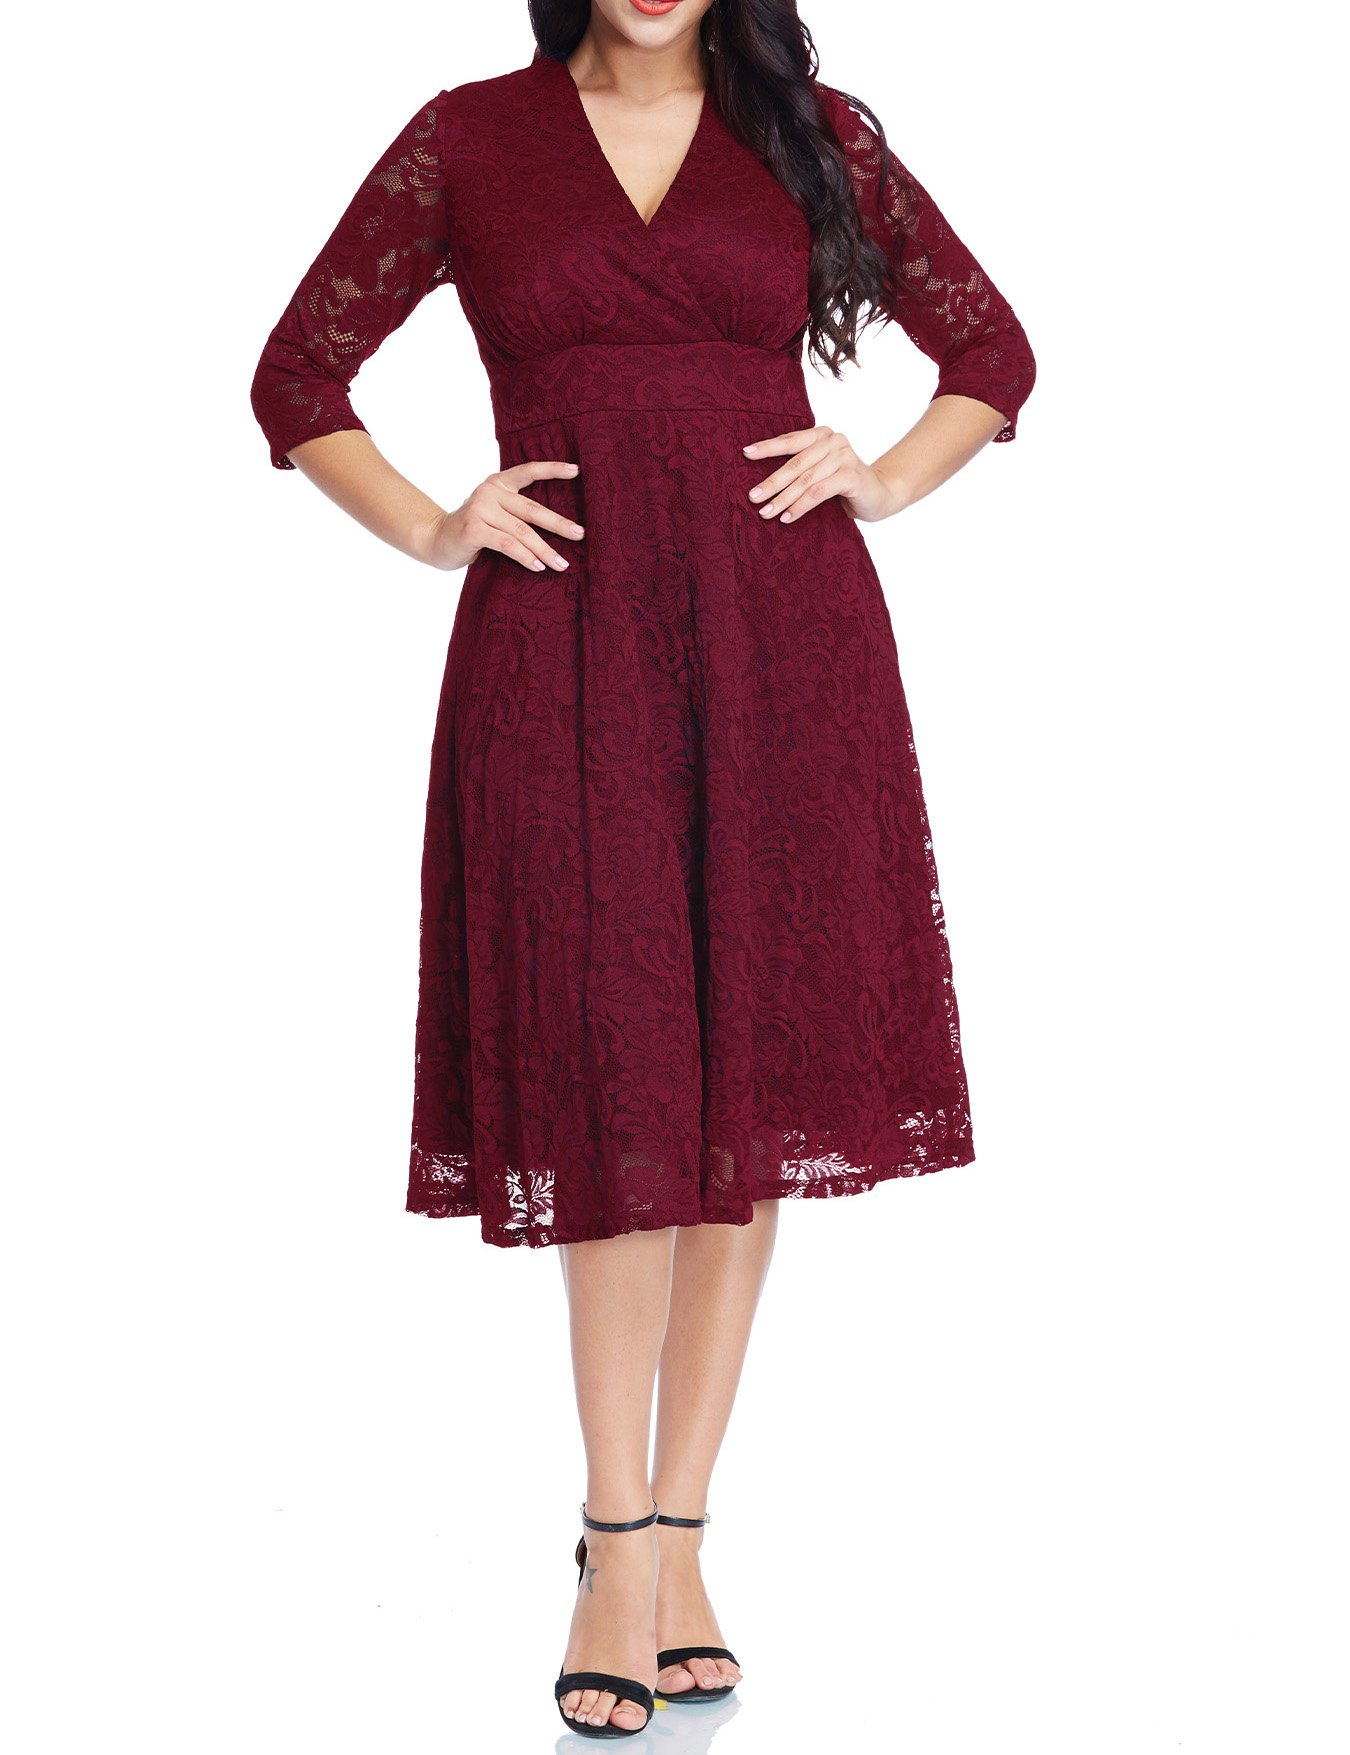 GRAPENT Women's Lace Plus Size Mother Of The Bride Skater Dress Bridal Wedding Party Maroon 16W by GRAPENT (Image #5)